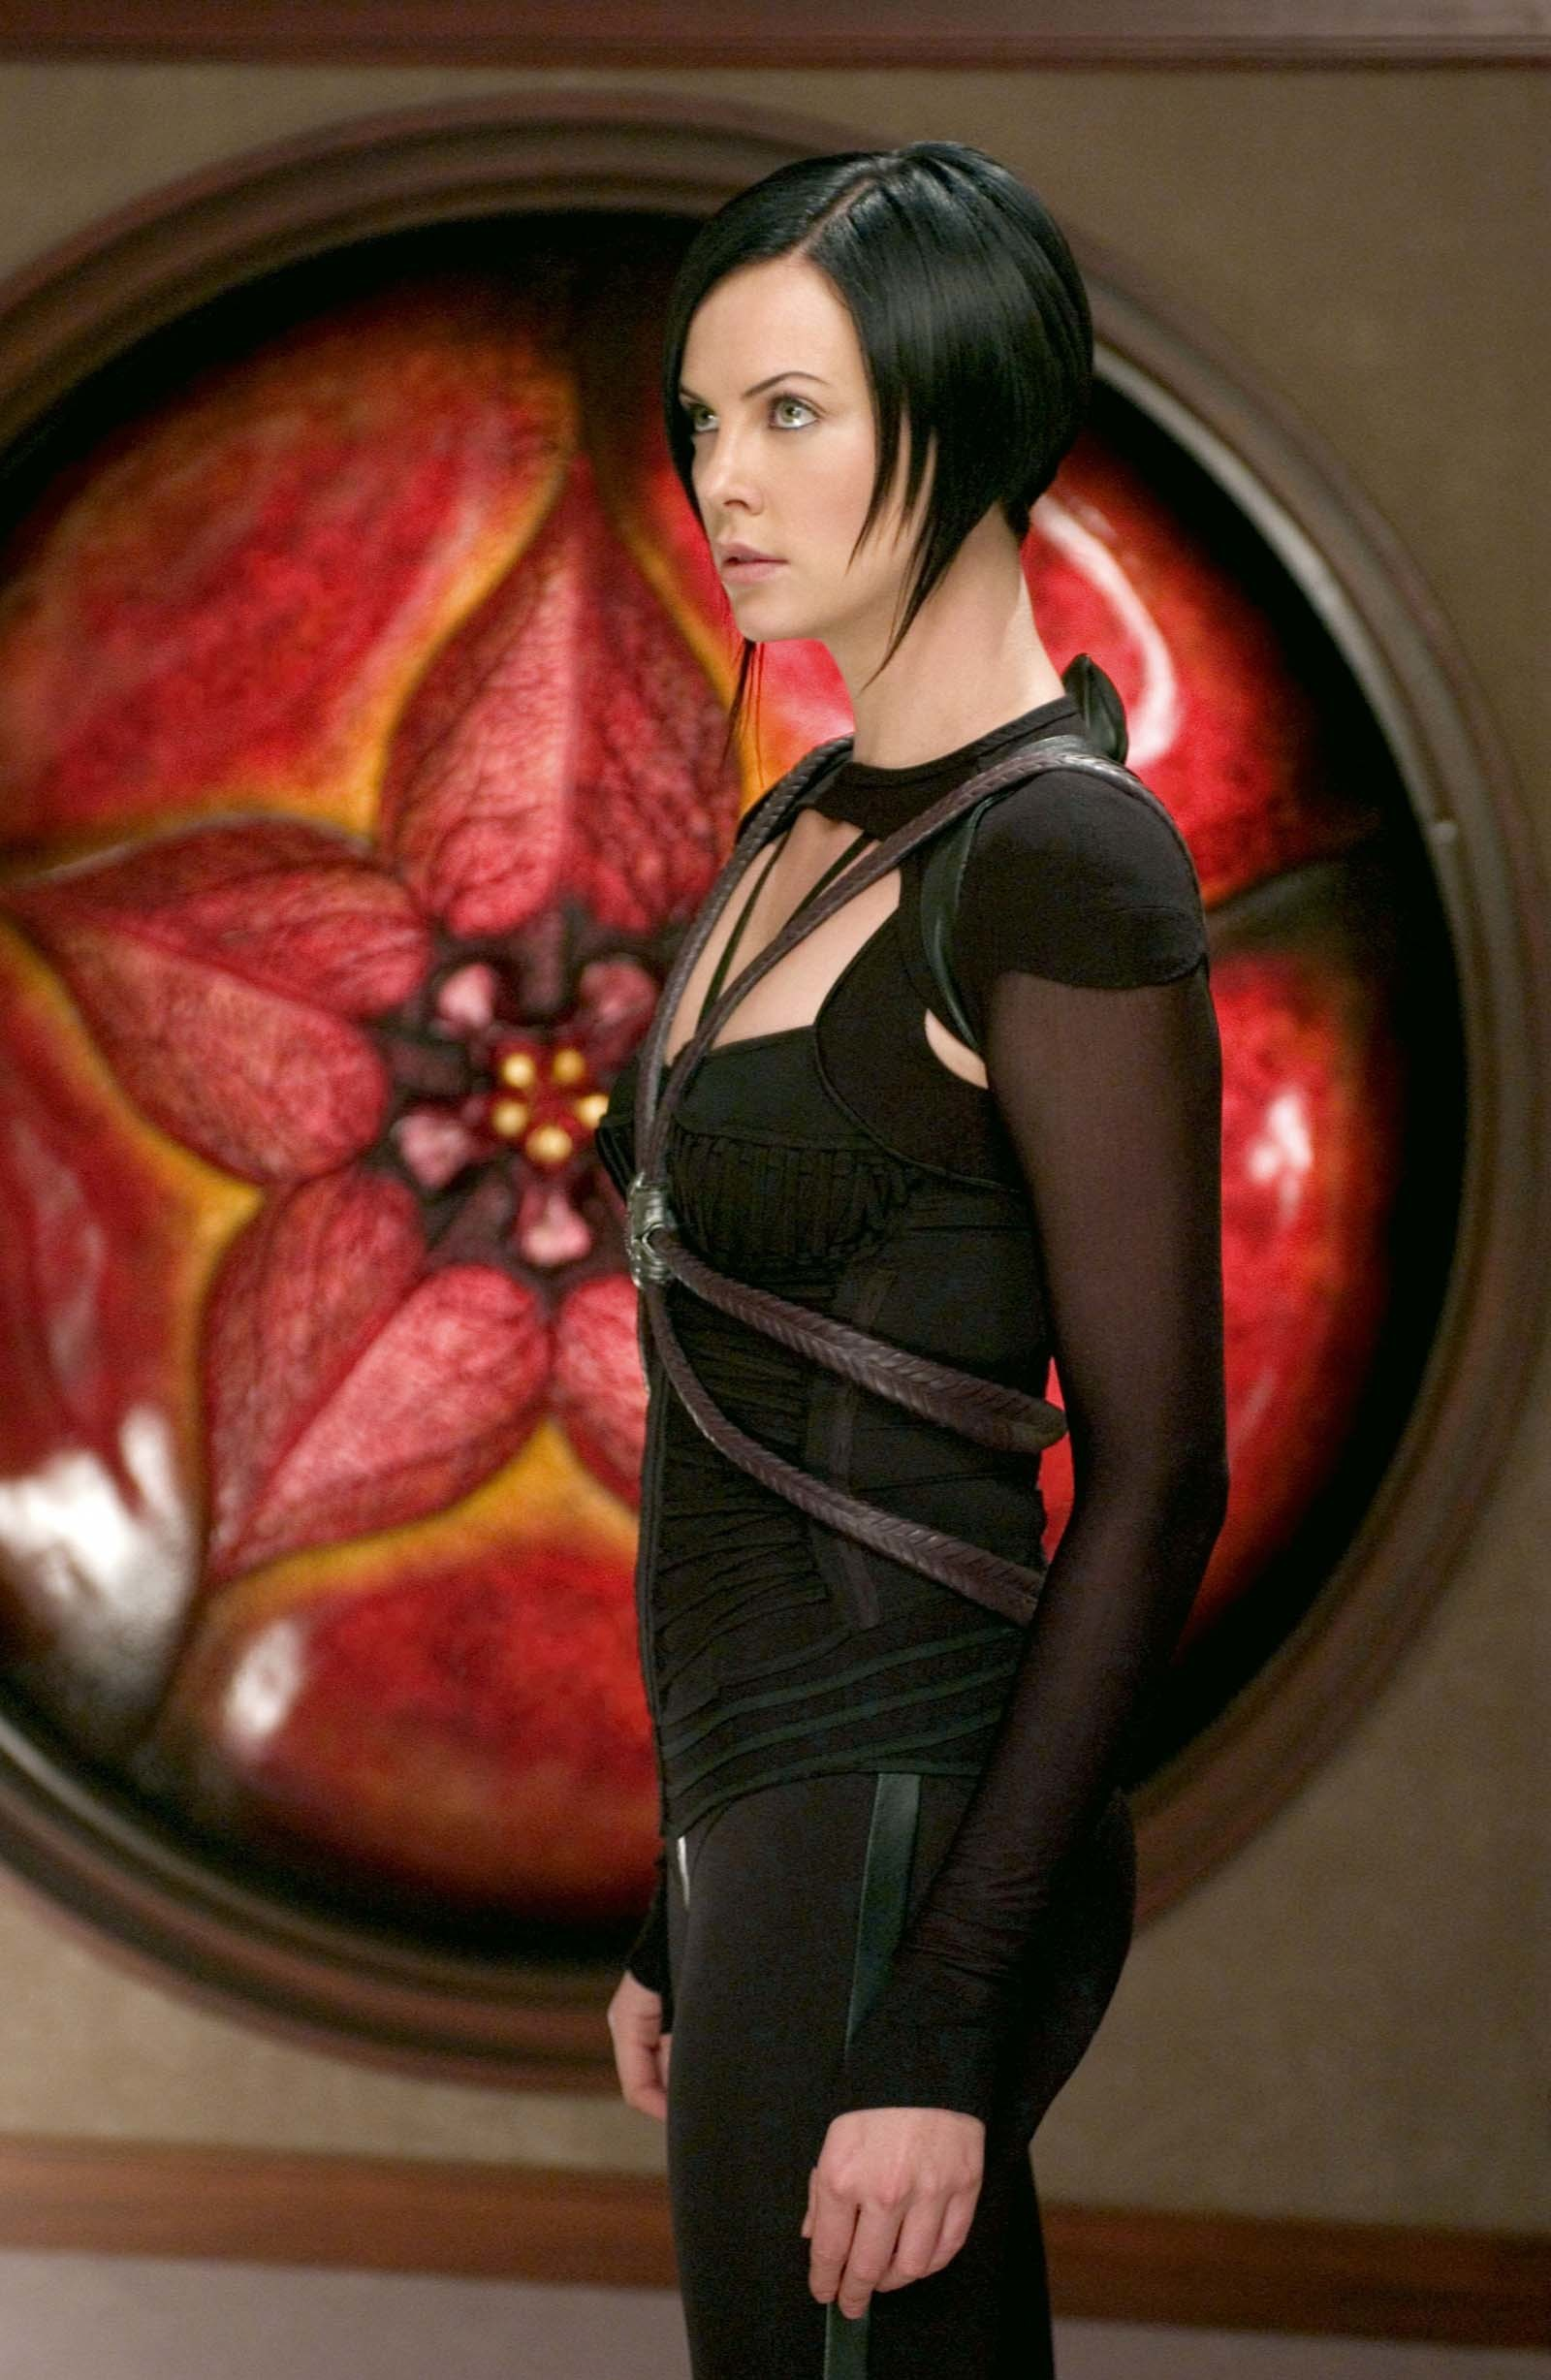 Res: 1600x2455, Photo of Aeon Flux #49297. Number of votes: 2. There are 16 more pics in  the Aeon Flux photo gallery.